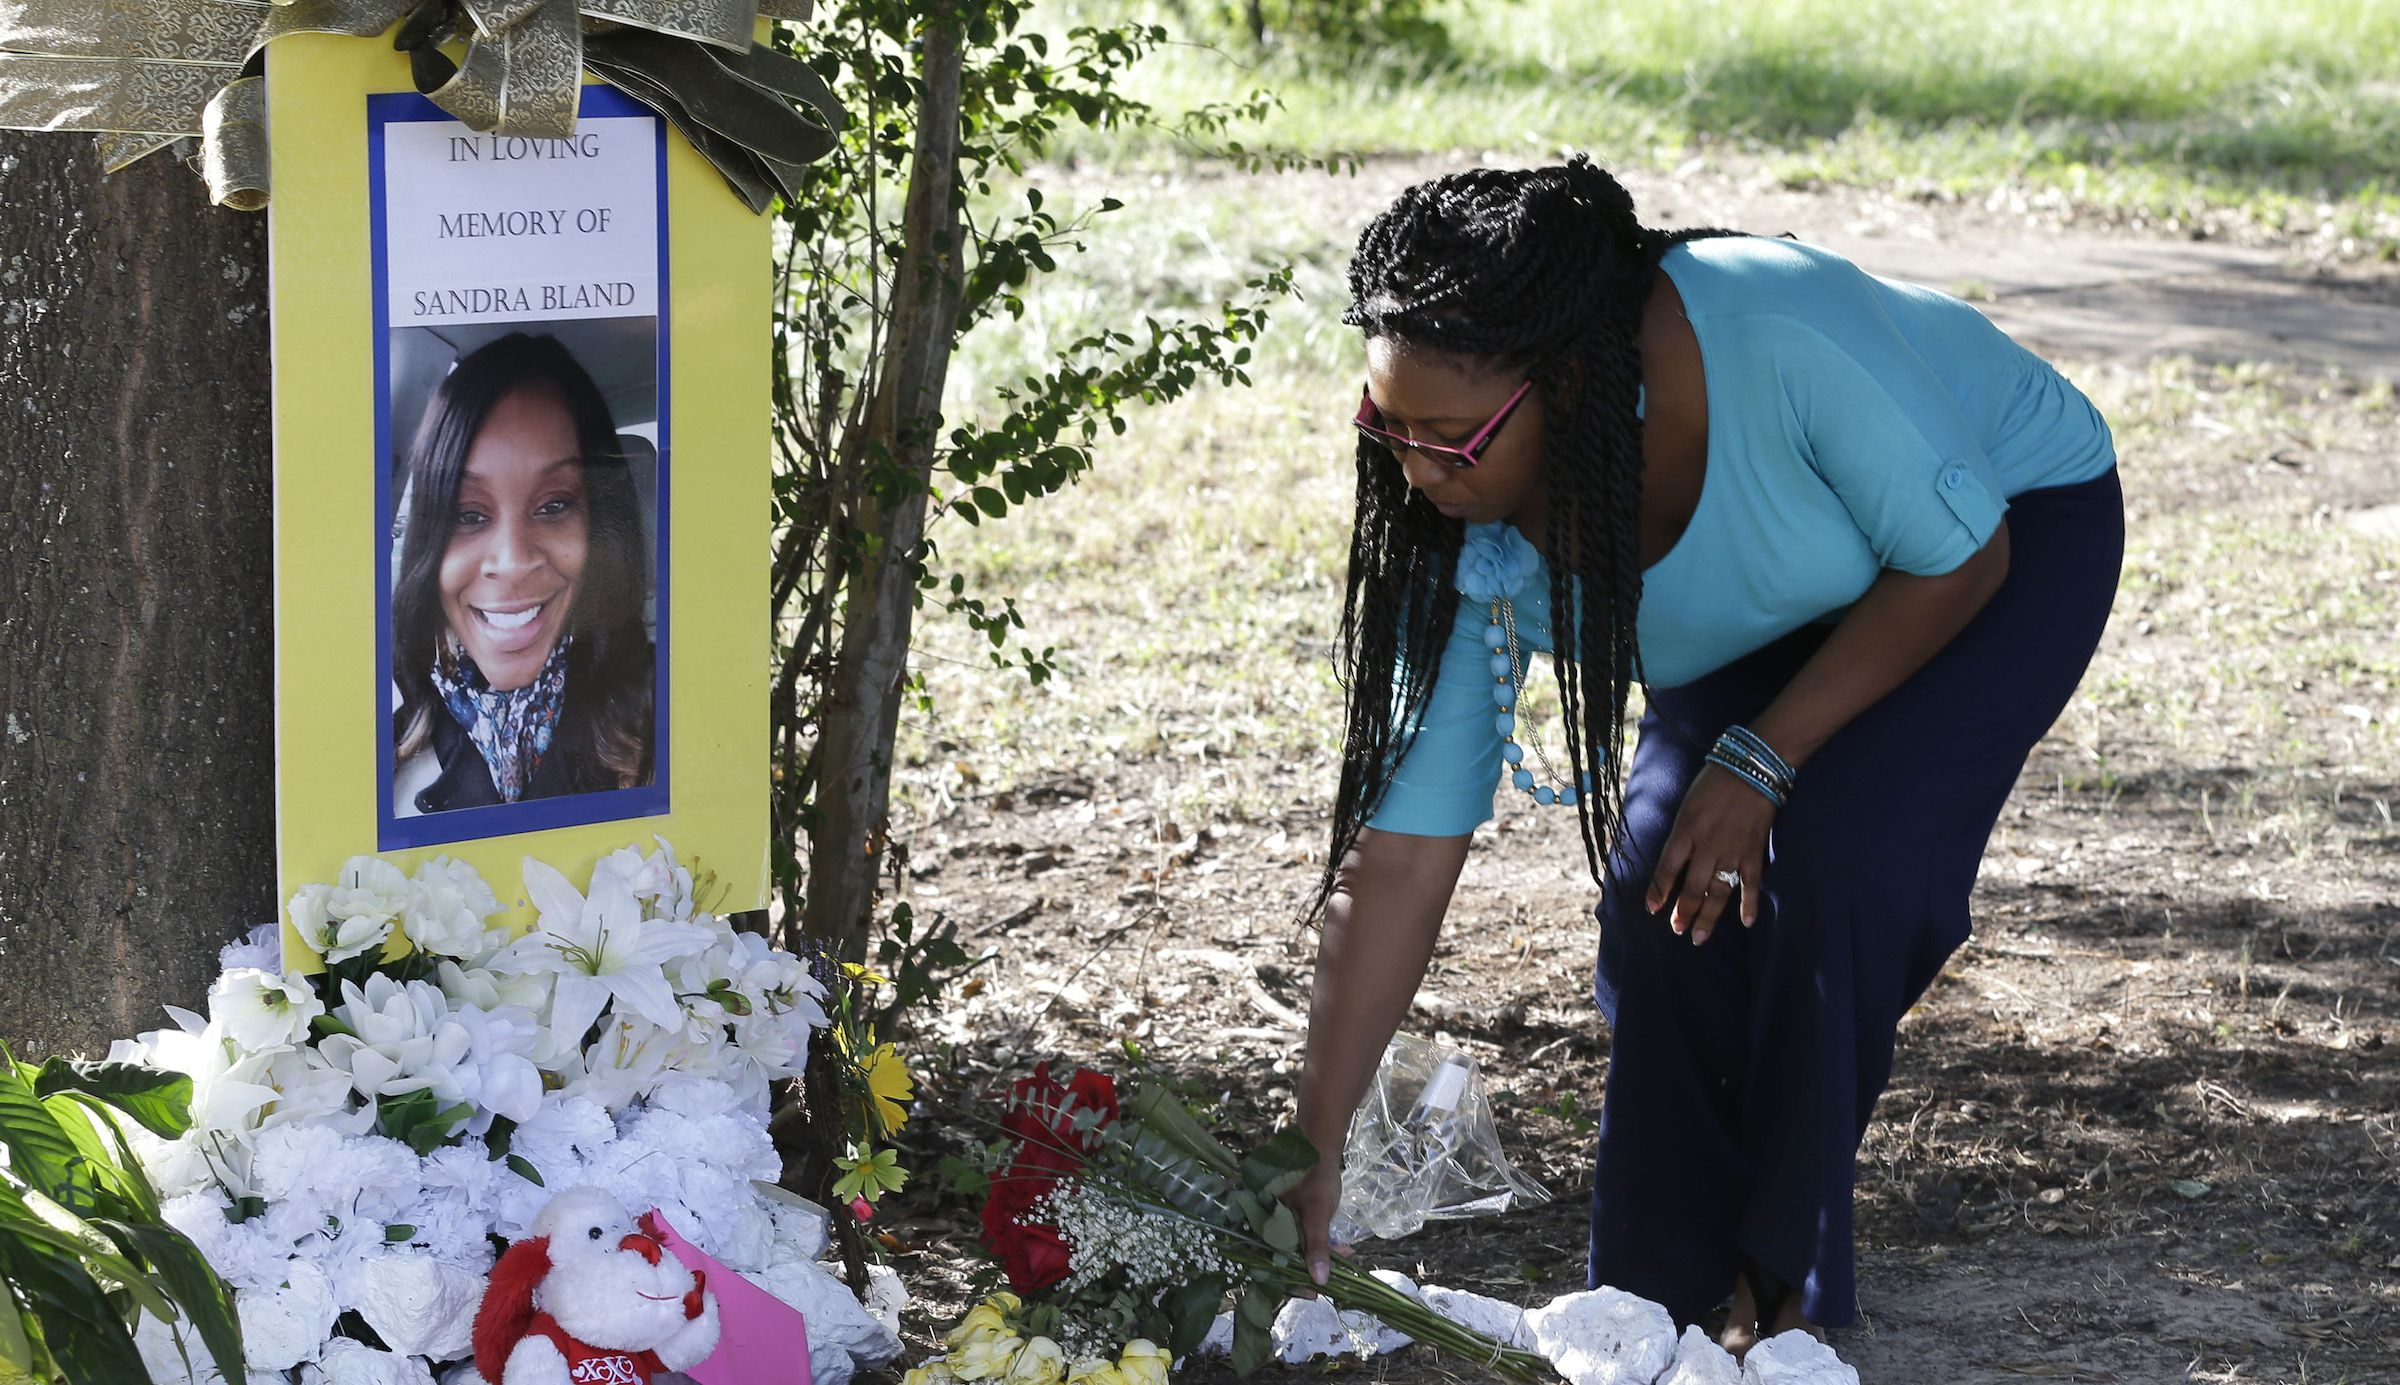 Jeanette Williams places a bouquet of roses at a memorial for Sandra Bland near Prairie View A&M University, Tuesday, July 21, 2015, in Prairie View, Texas. A newly released dashcam video documents how a routine traffic stop escalated into a shouting confrontation between a Texas state trooper and Bland, which led to her arrest. Bland was found hanging in her jail cell three days after the incident.